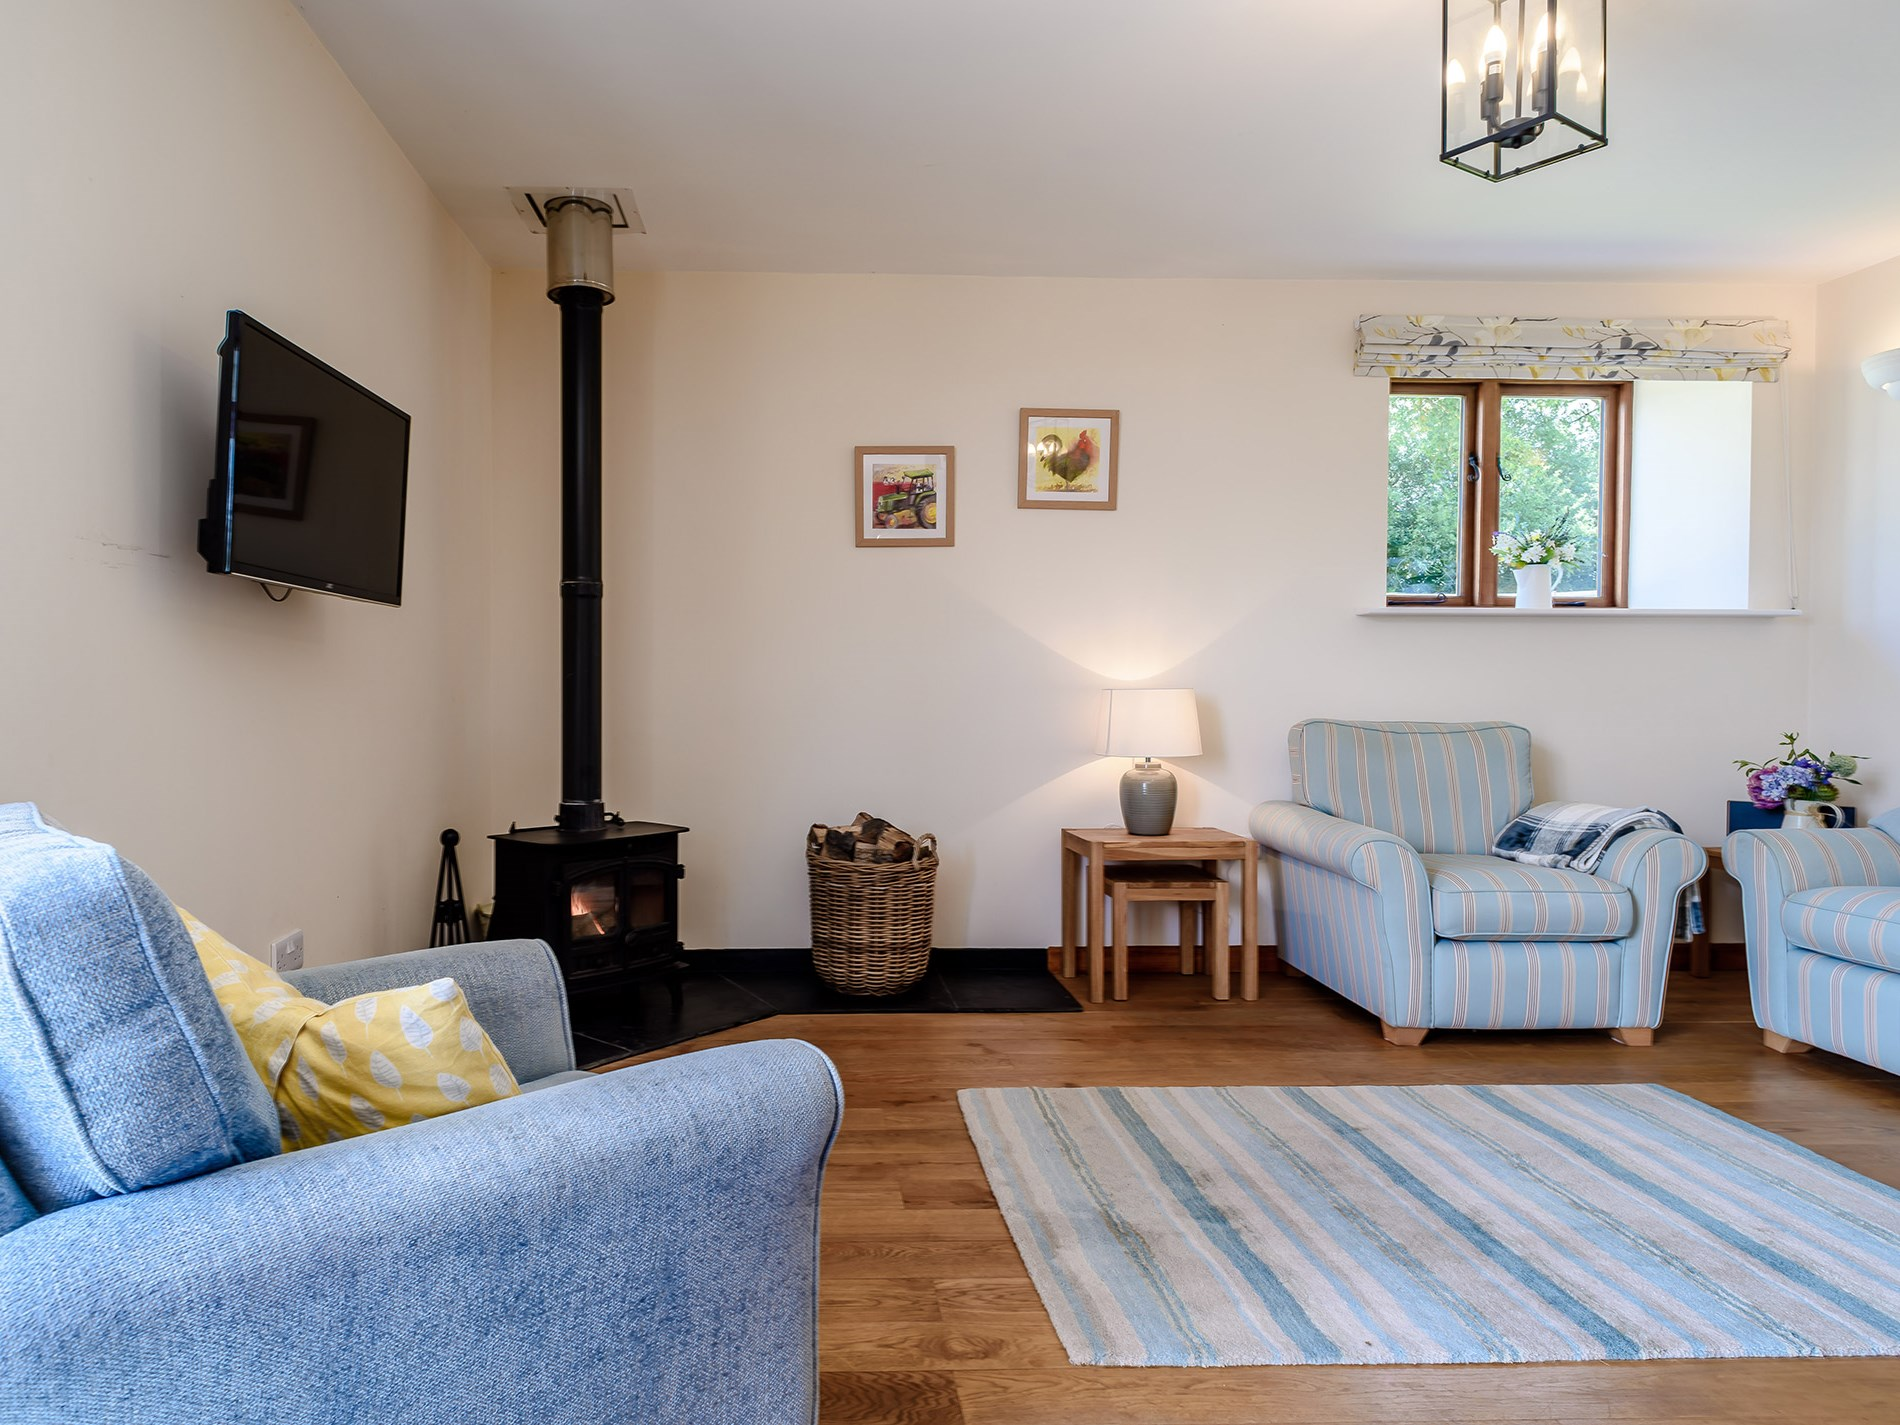 2 Bedroom Cottage in Sidmouth, Devon